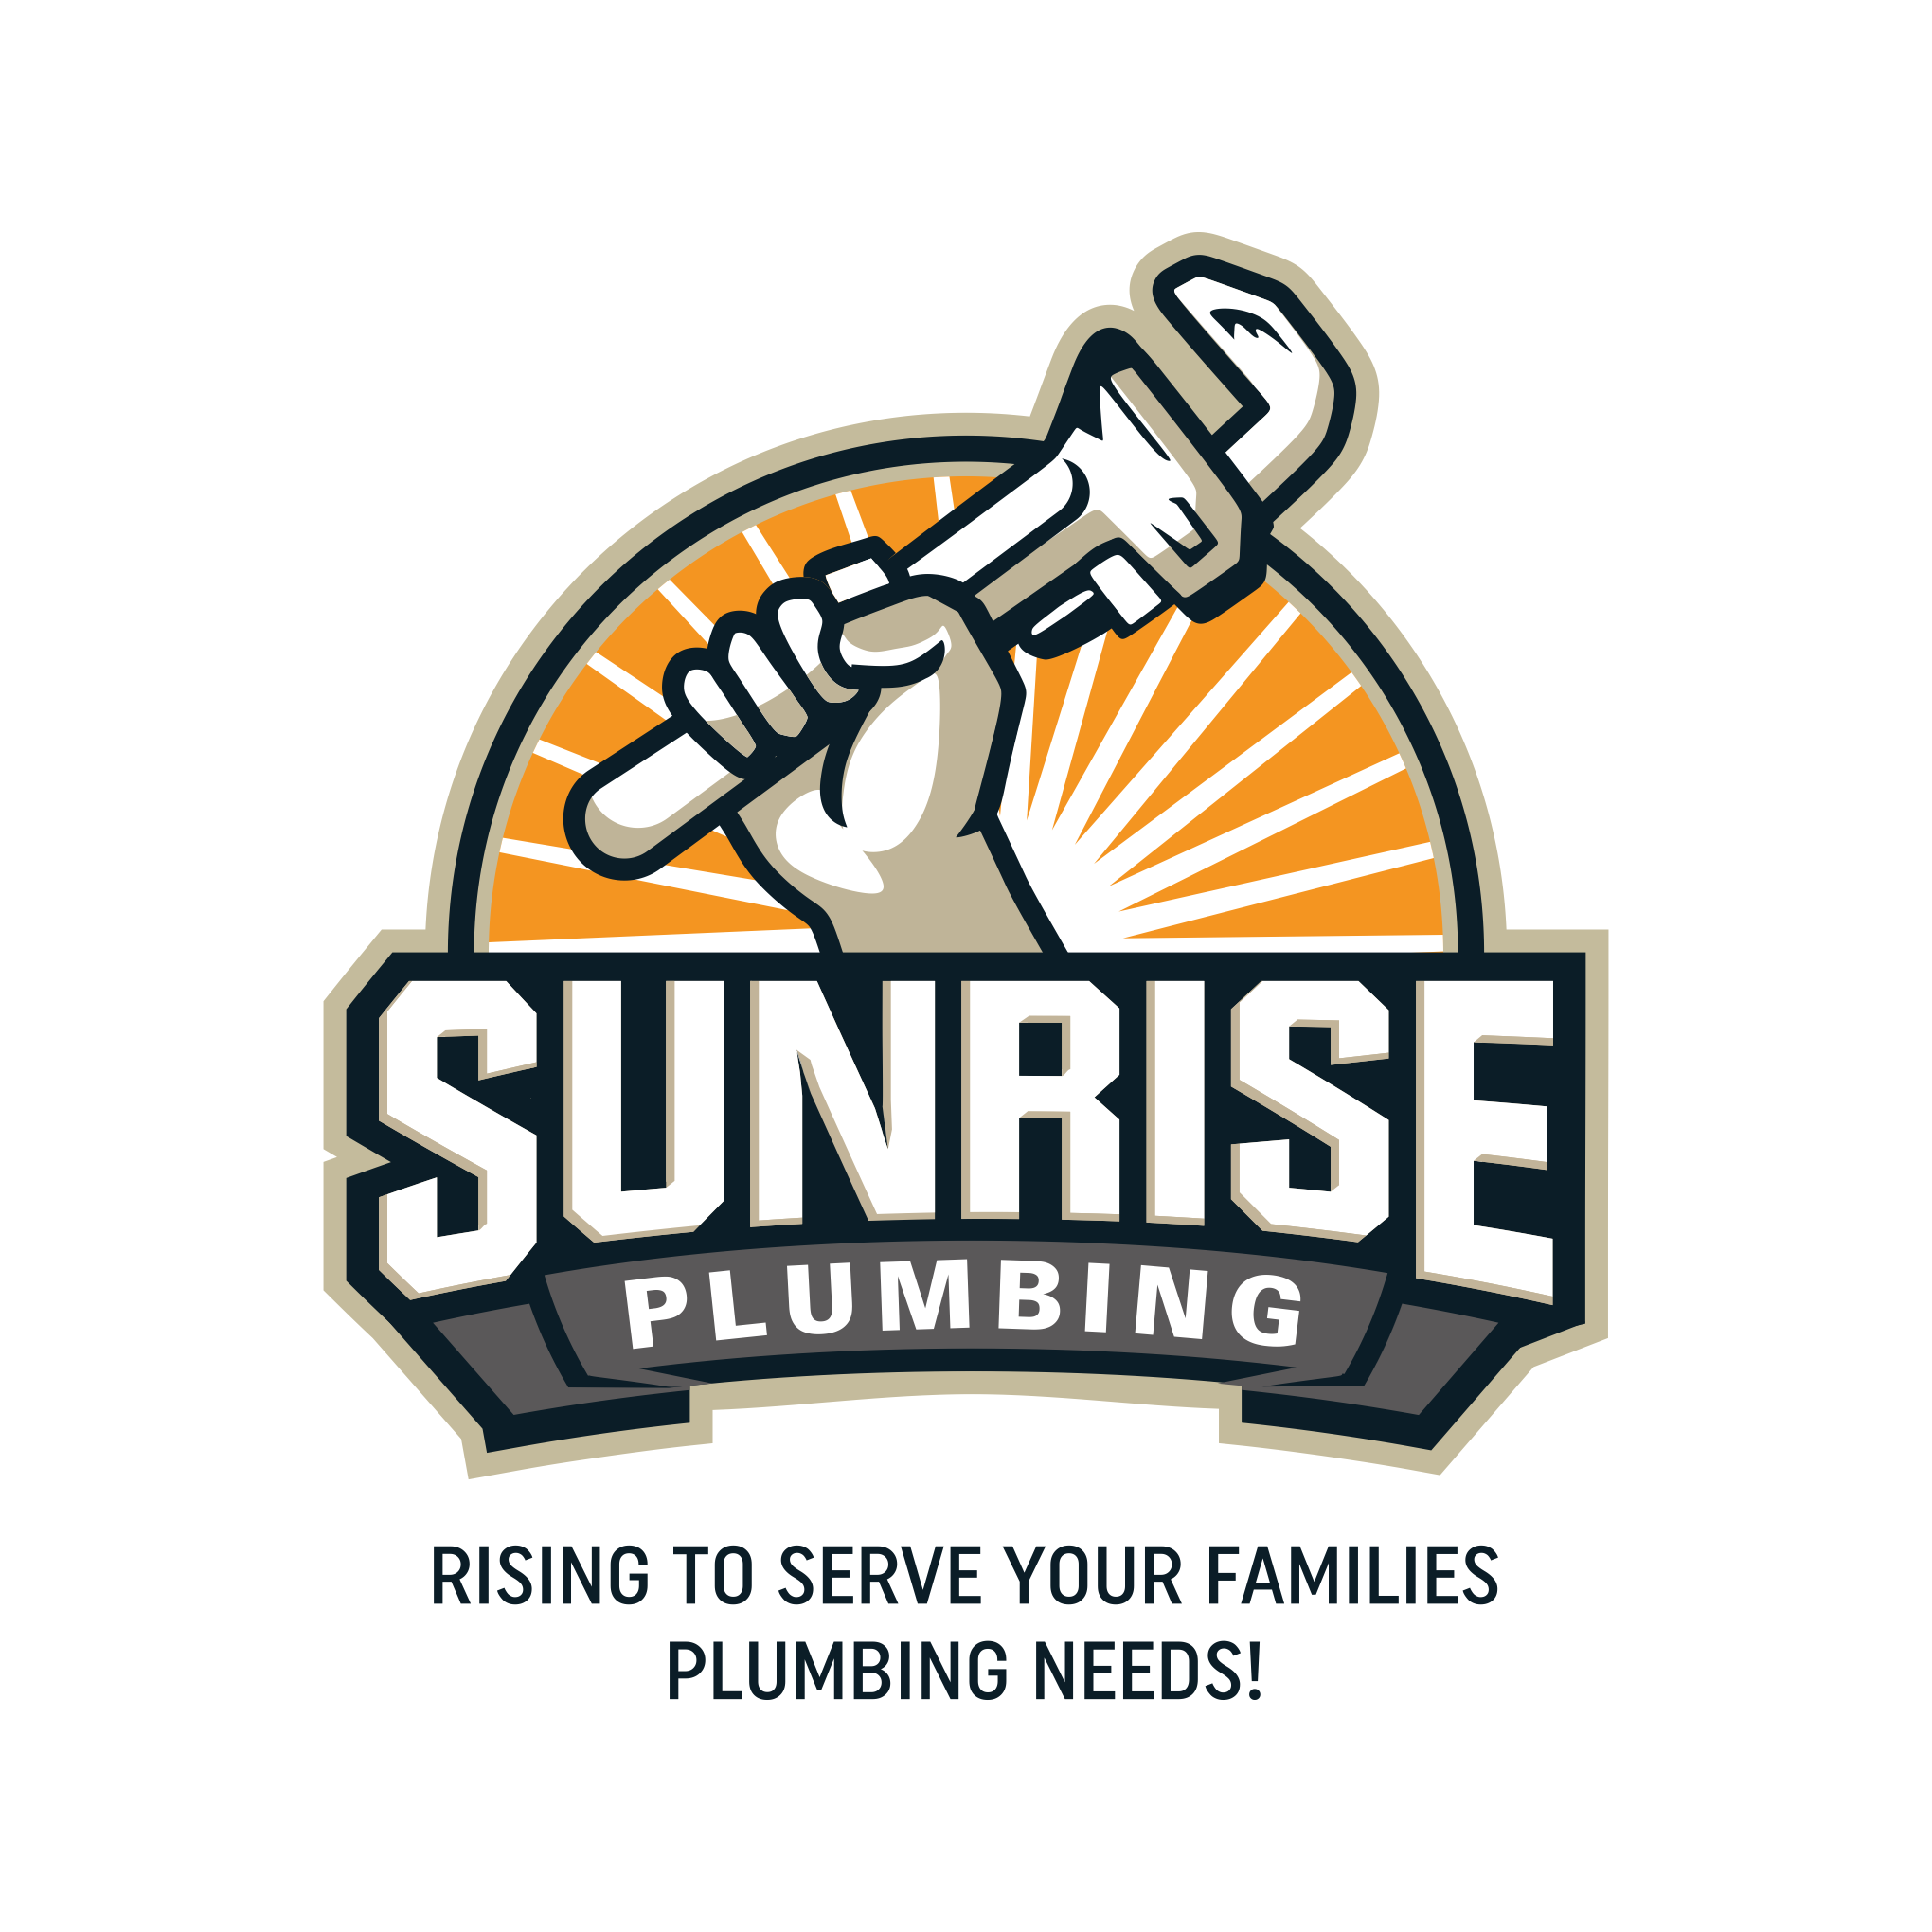 Need a logo and brand identity for new Plumbing company.